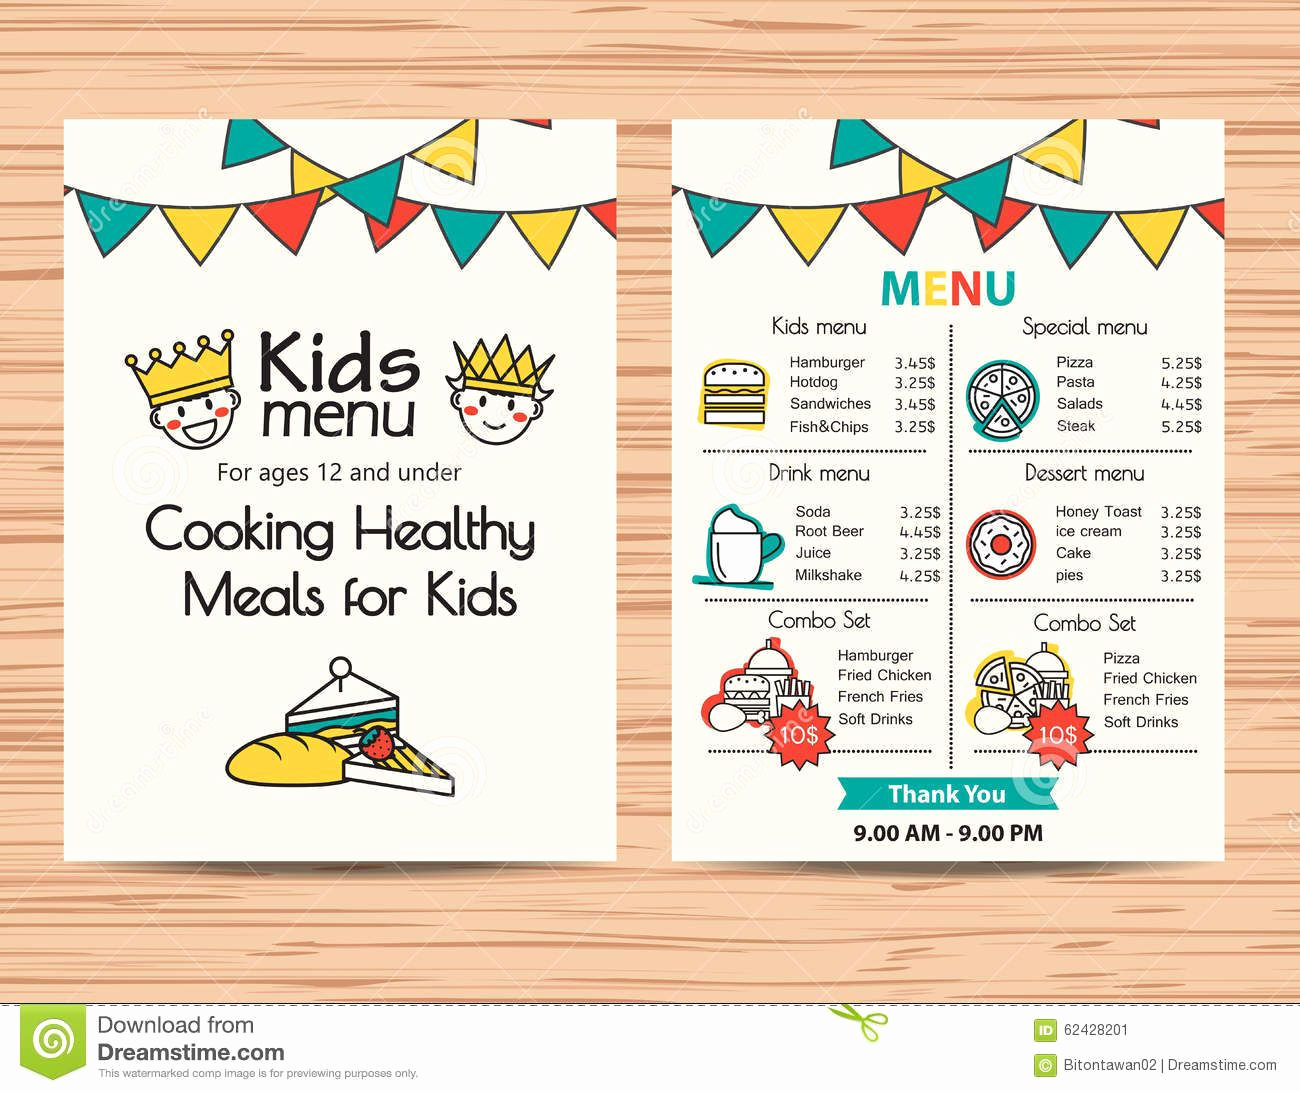 Free Kids Menu Template Inspirational Kids Meal Menu Vector Template Restaurant Menu Design